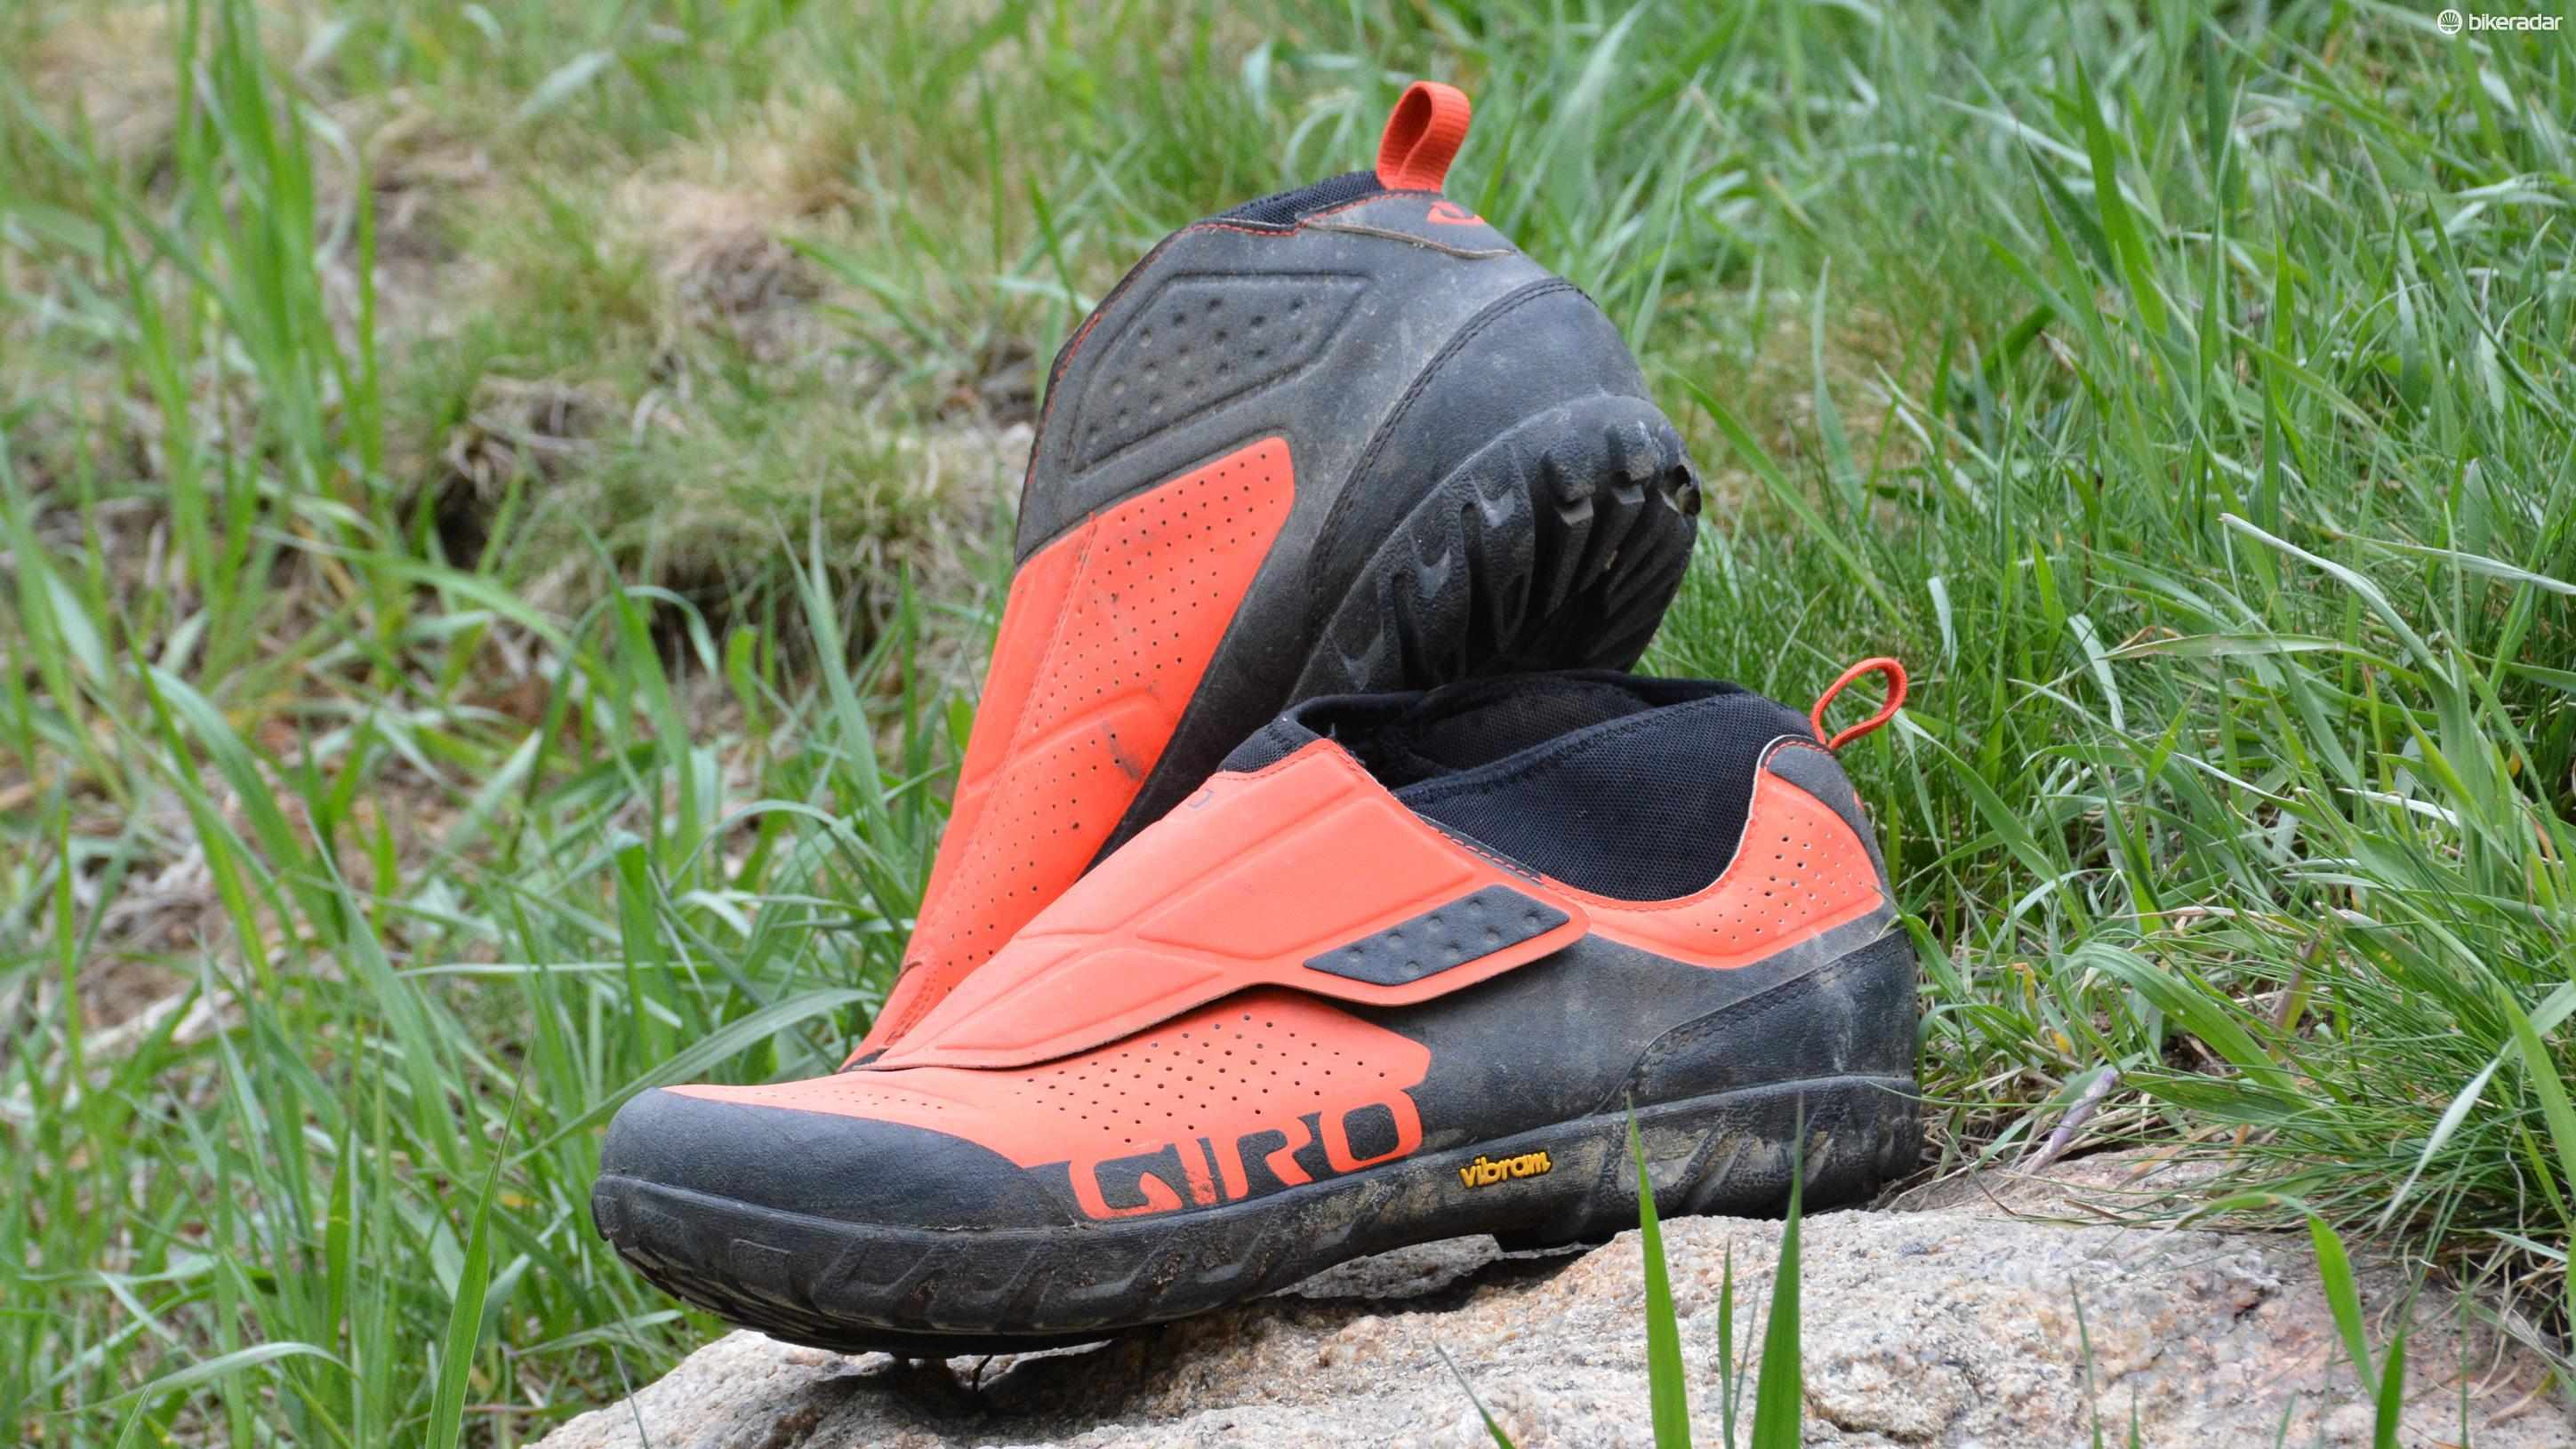 Giro's Terraduro Mids have the ambitious goal of being the ultimate all-mountain shoes